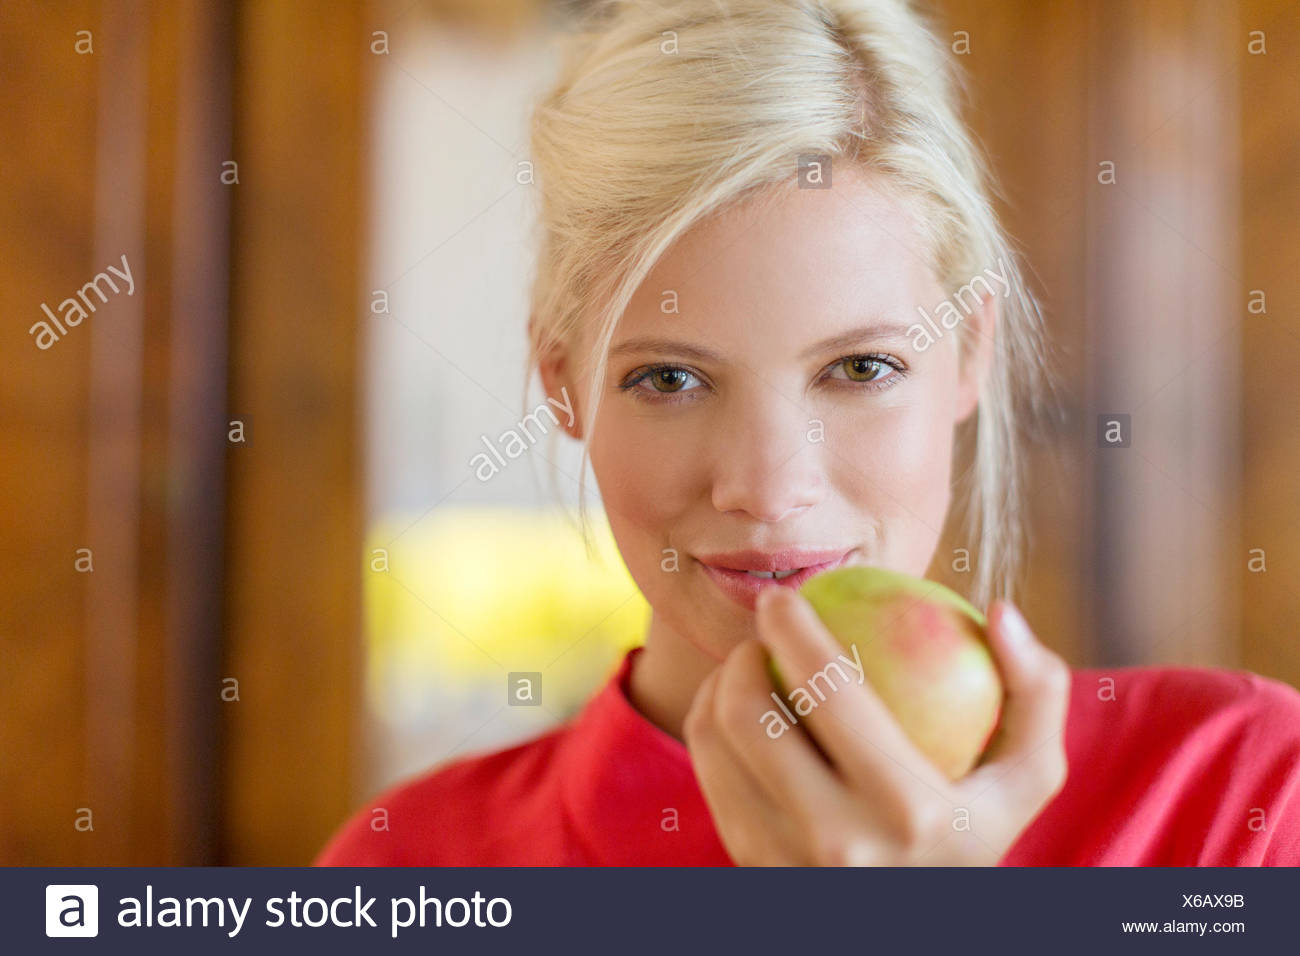 Woman eating apple indoors - Stock Image